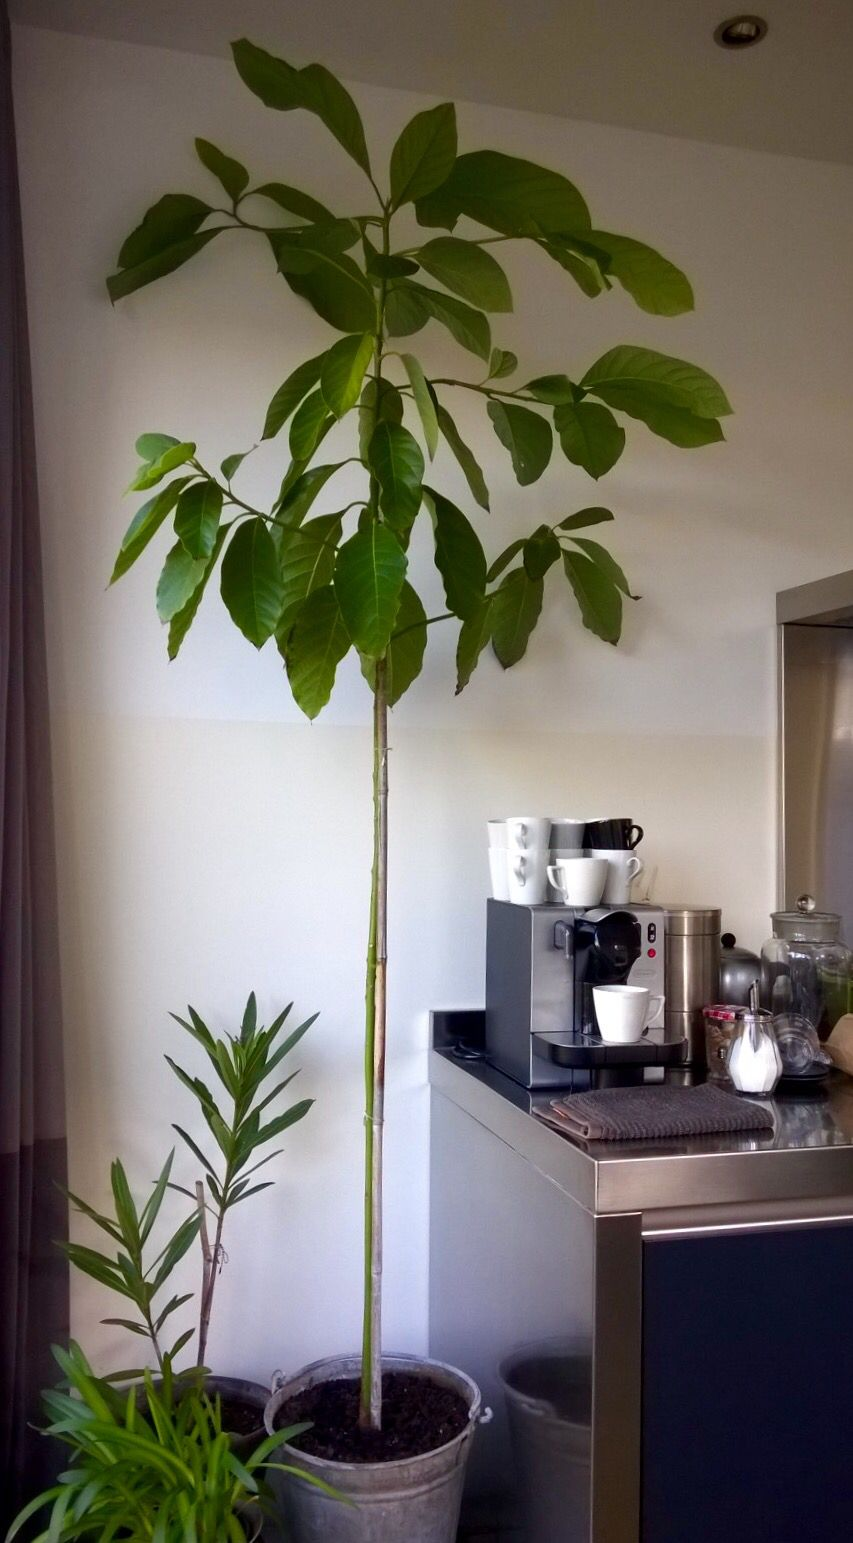 My Home Grown Avocado Tree Avocado Plant Growing An